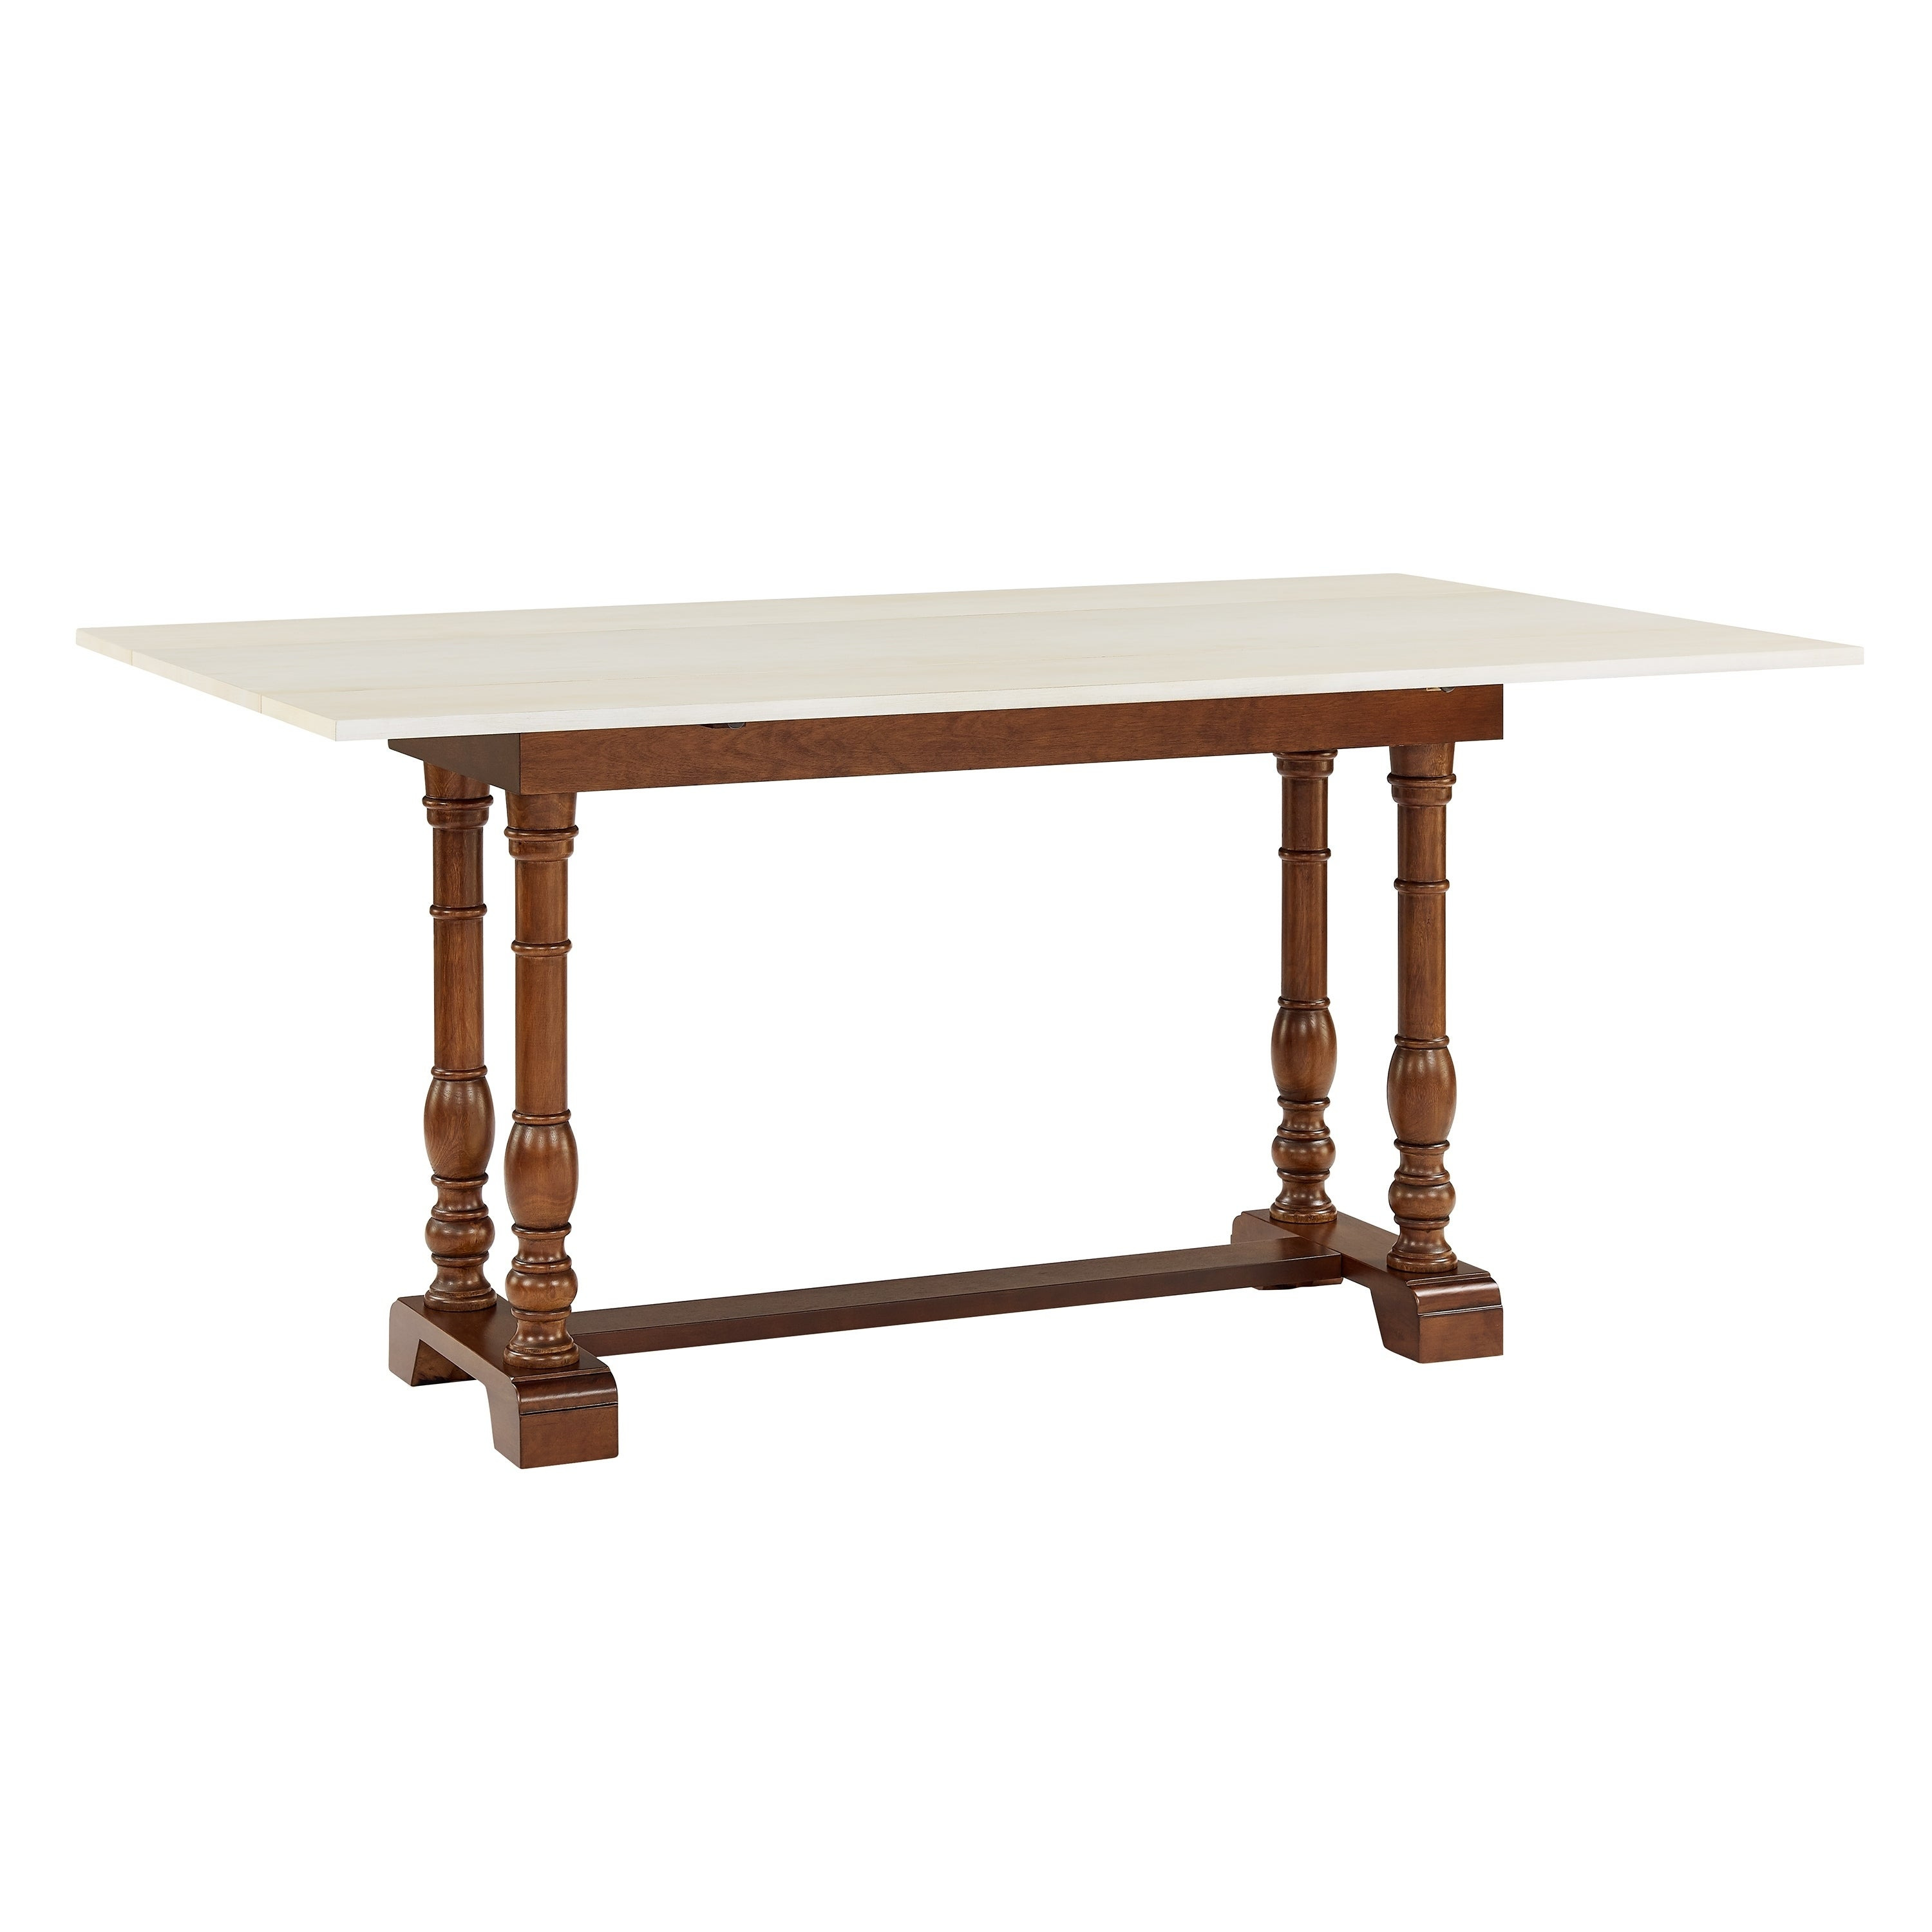 Phenomenal Harper Blvd Eddlewood Farmhouse Folding Trestle Console To Dining Table Dark Tobacco Ivory Caraccident5 Cool Chair Designs And Ideas Caraccident5Info